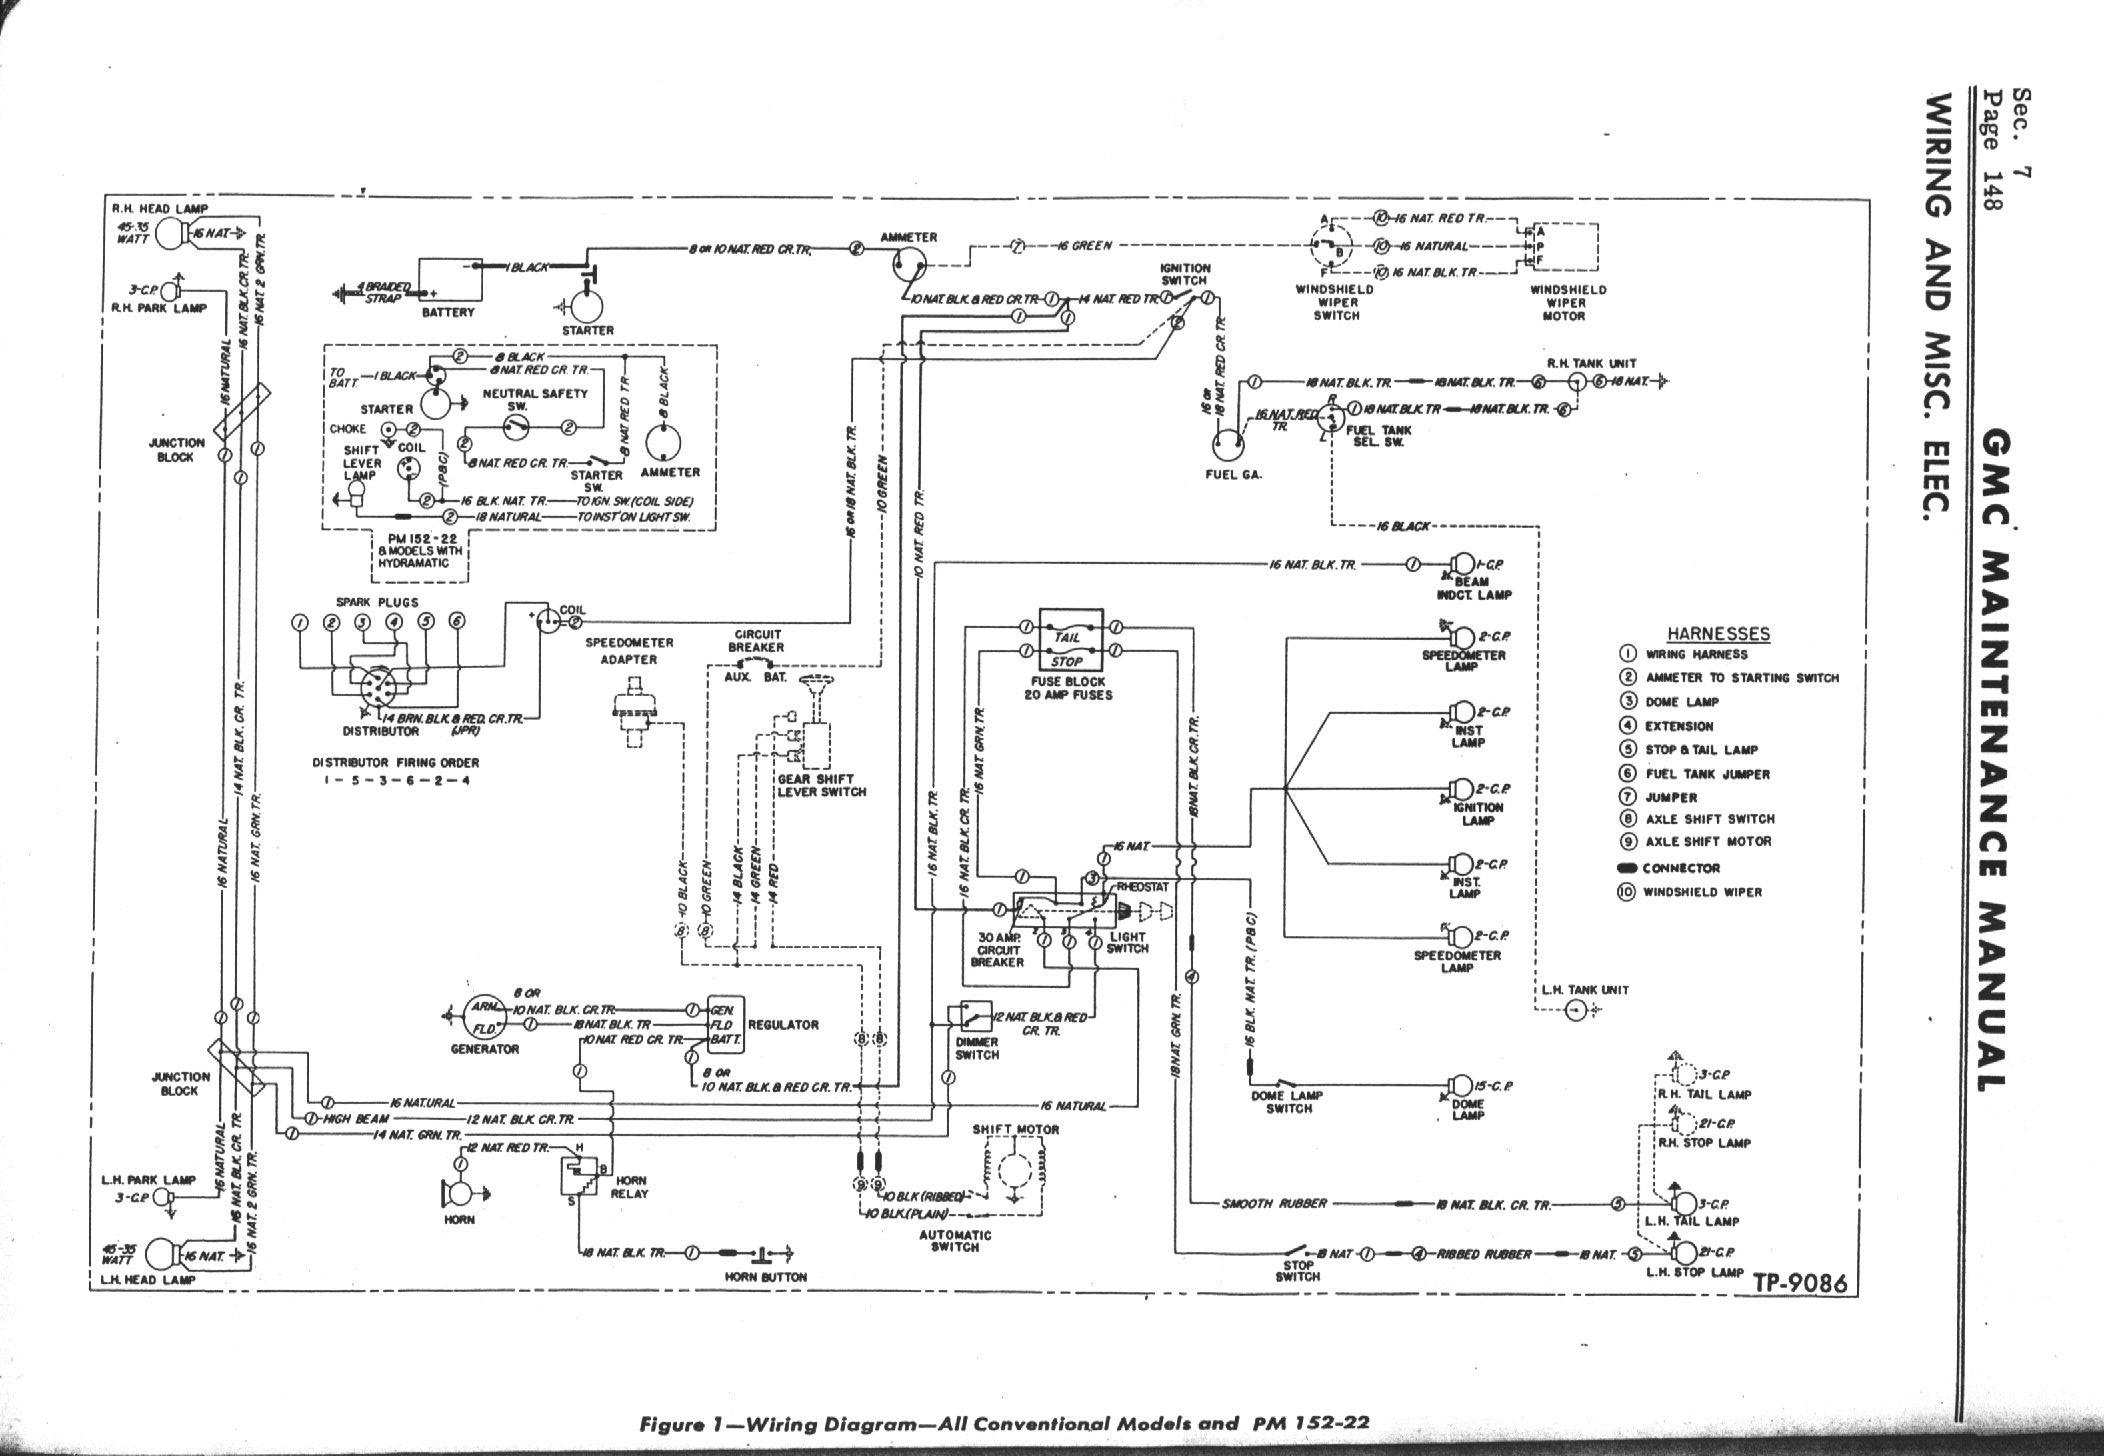 Seat Ibiza Wiring Diagram - Wiring Diagram And Schematics on gmc truck electrical wiring diagrams, 1984 chevy ac electric diagrams, gmc truck fuse diagrams, 1984 gmc heater wiring diagram, 2010 gmc light diagrams, 1984 gmc wiring diagram light, 2001 gmc sierra wiring diagrams,